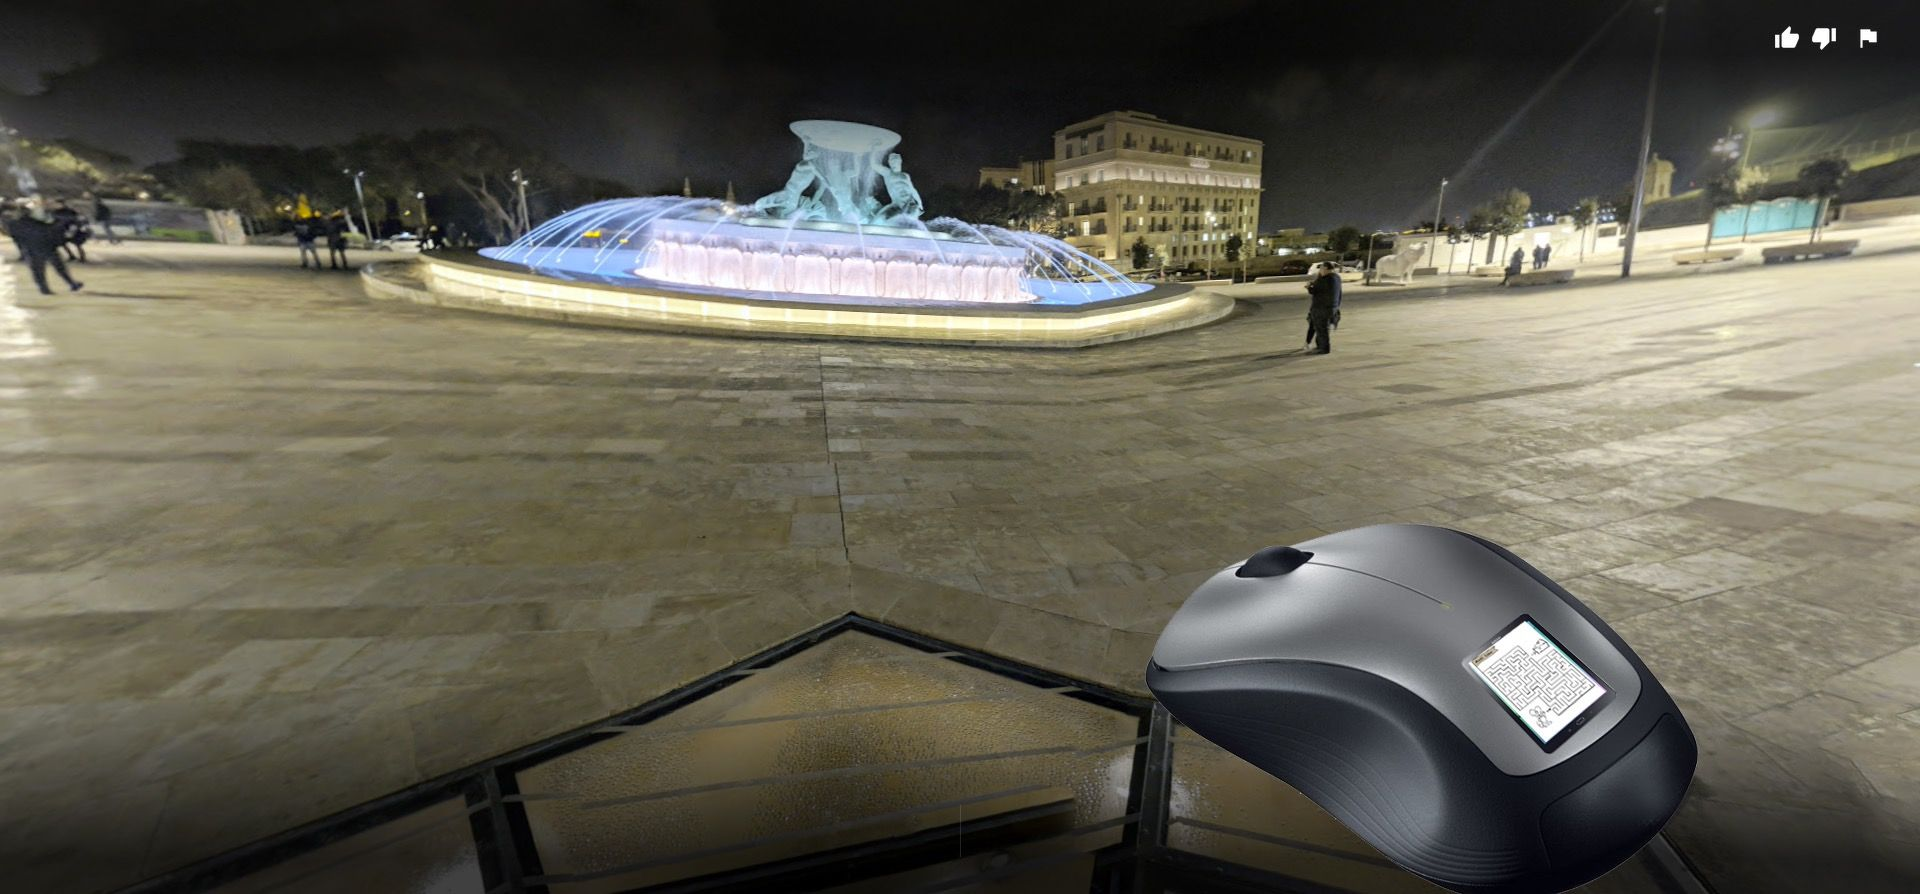 An artist's impression of the giant mouse at Triton Square in Valletta